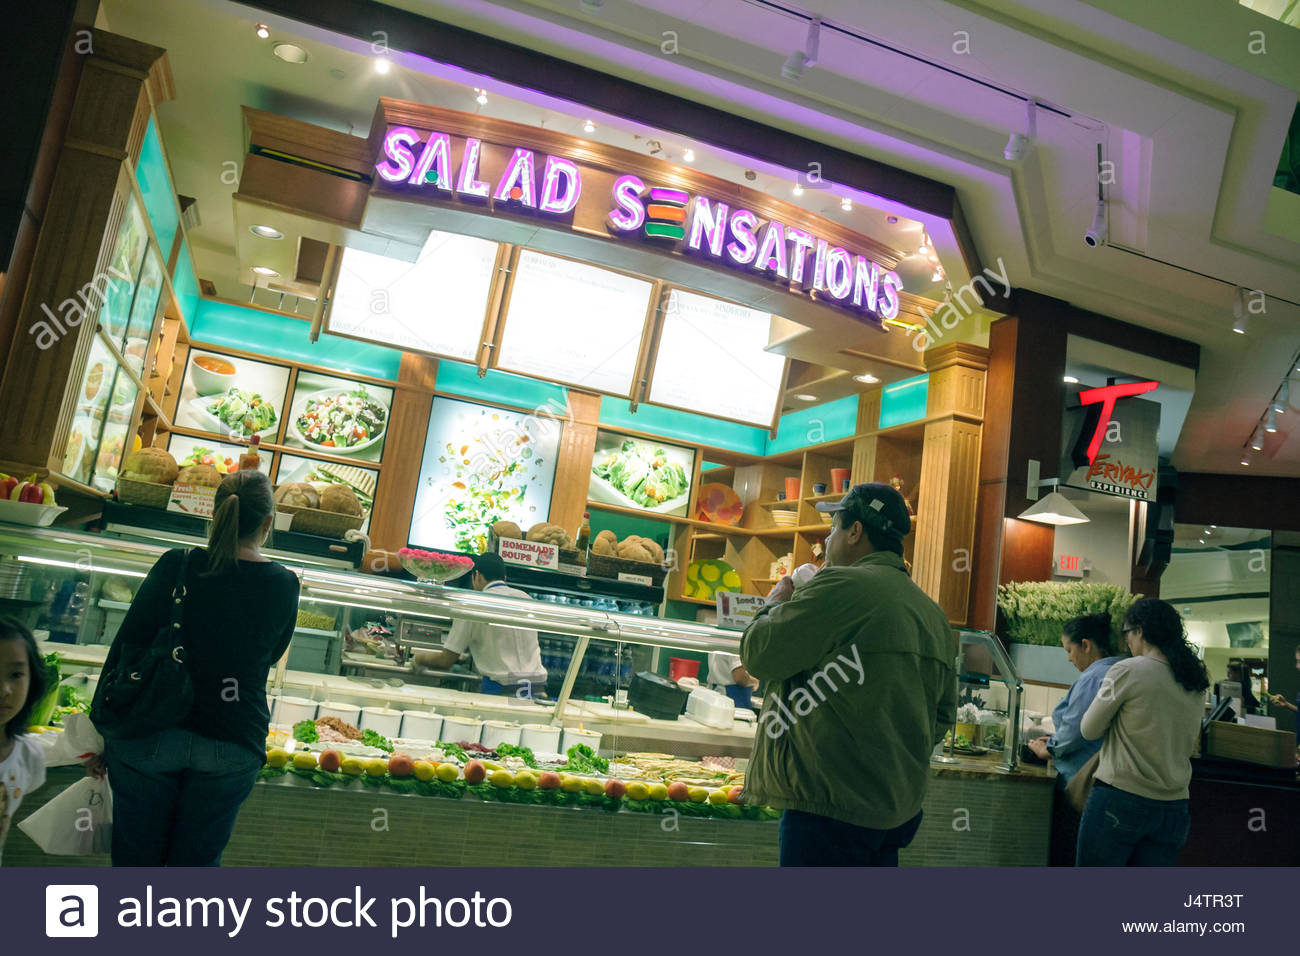 Palm Beach Florida Gardens The Gardens Mall food court Salad Stock ...